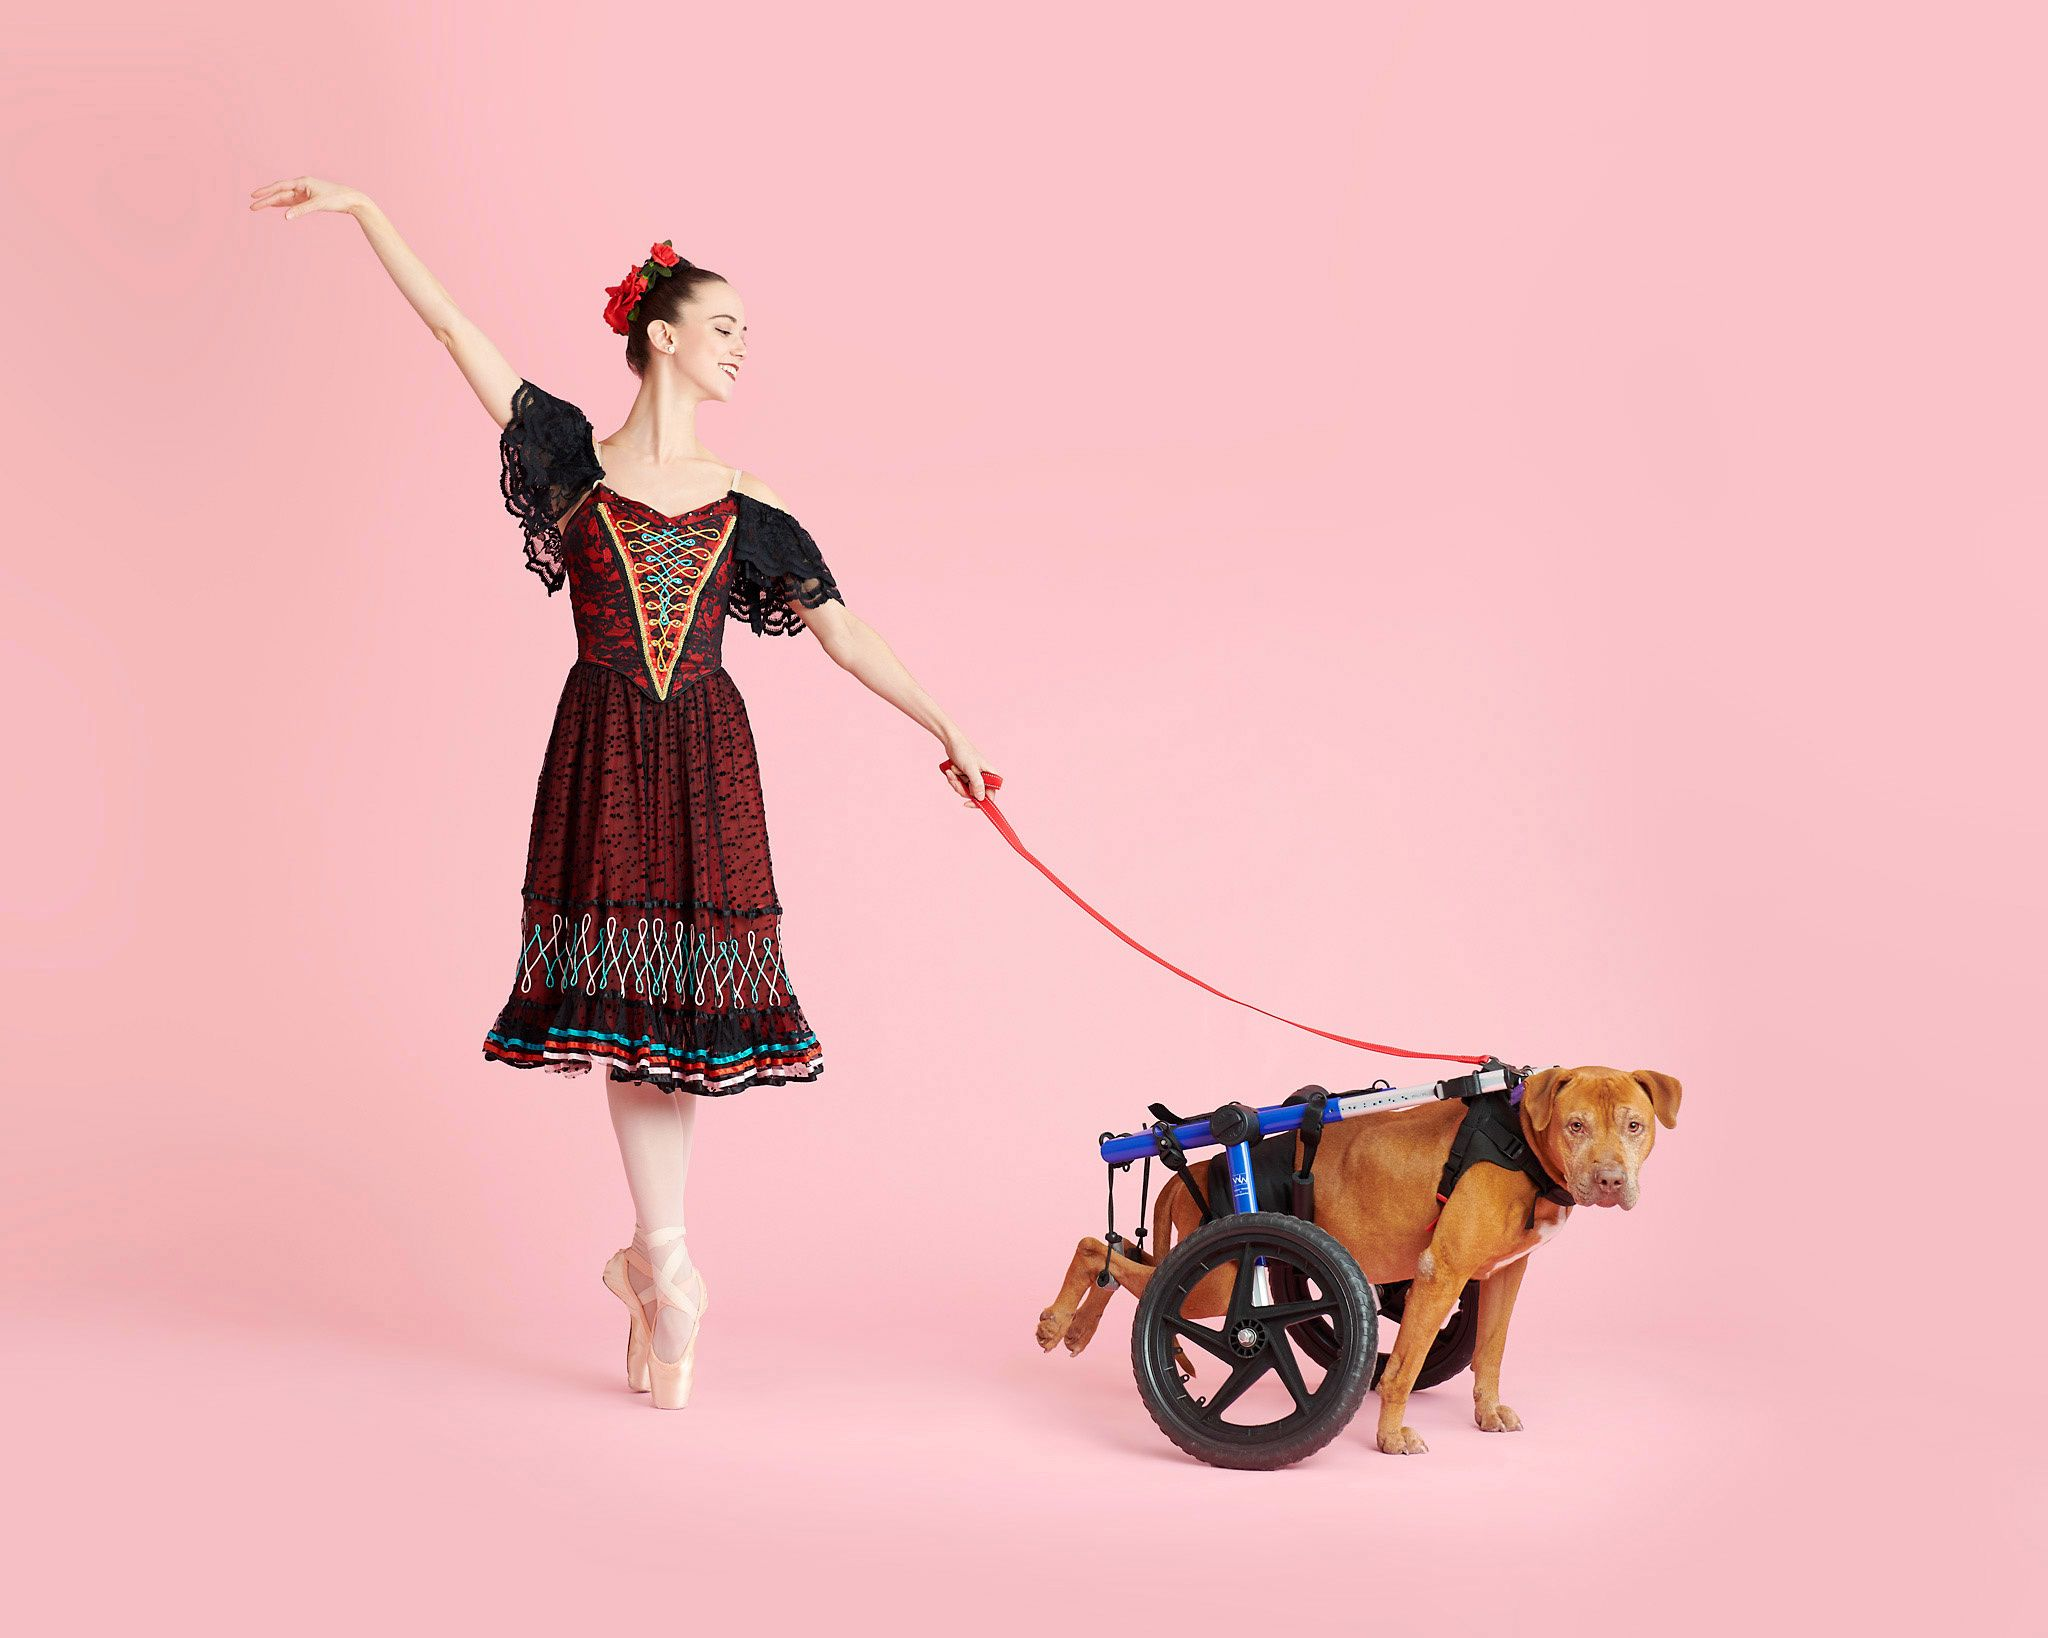 Dancers \u0026 Dogs Teamed Up With a Local Animal Shelter for the